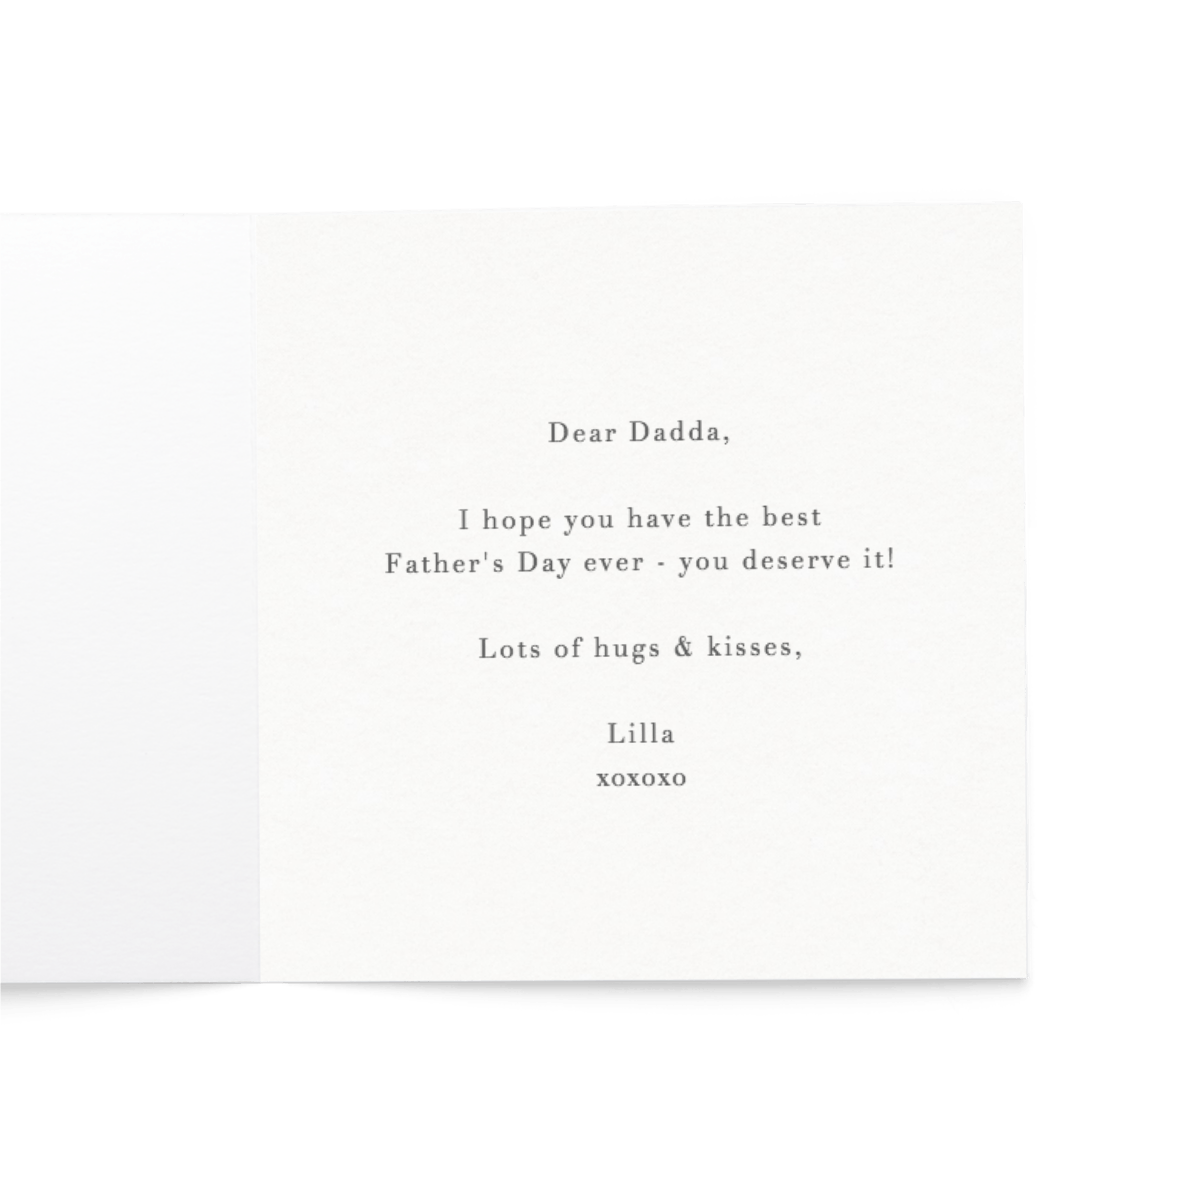 Https%3a%2f%2fwww.papier.com%2fproduct image%2f5976%2f21%2ffather s day photo card 1555 inside 1463138652.png?ixlib=rb 1.1